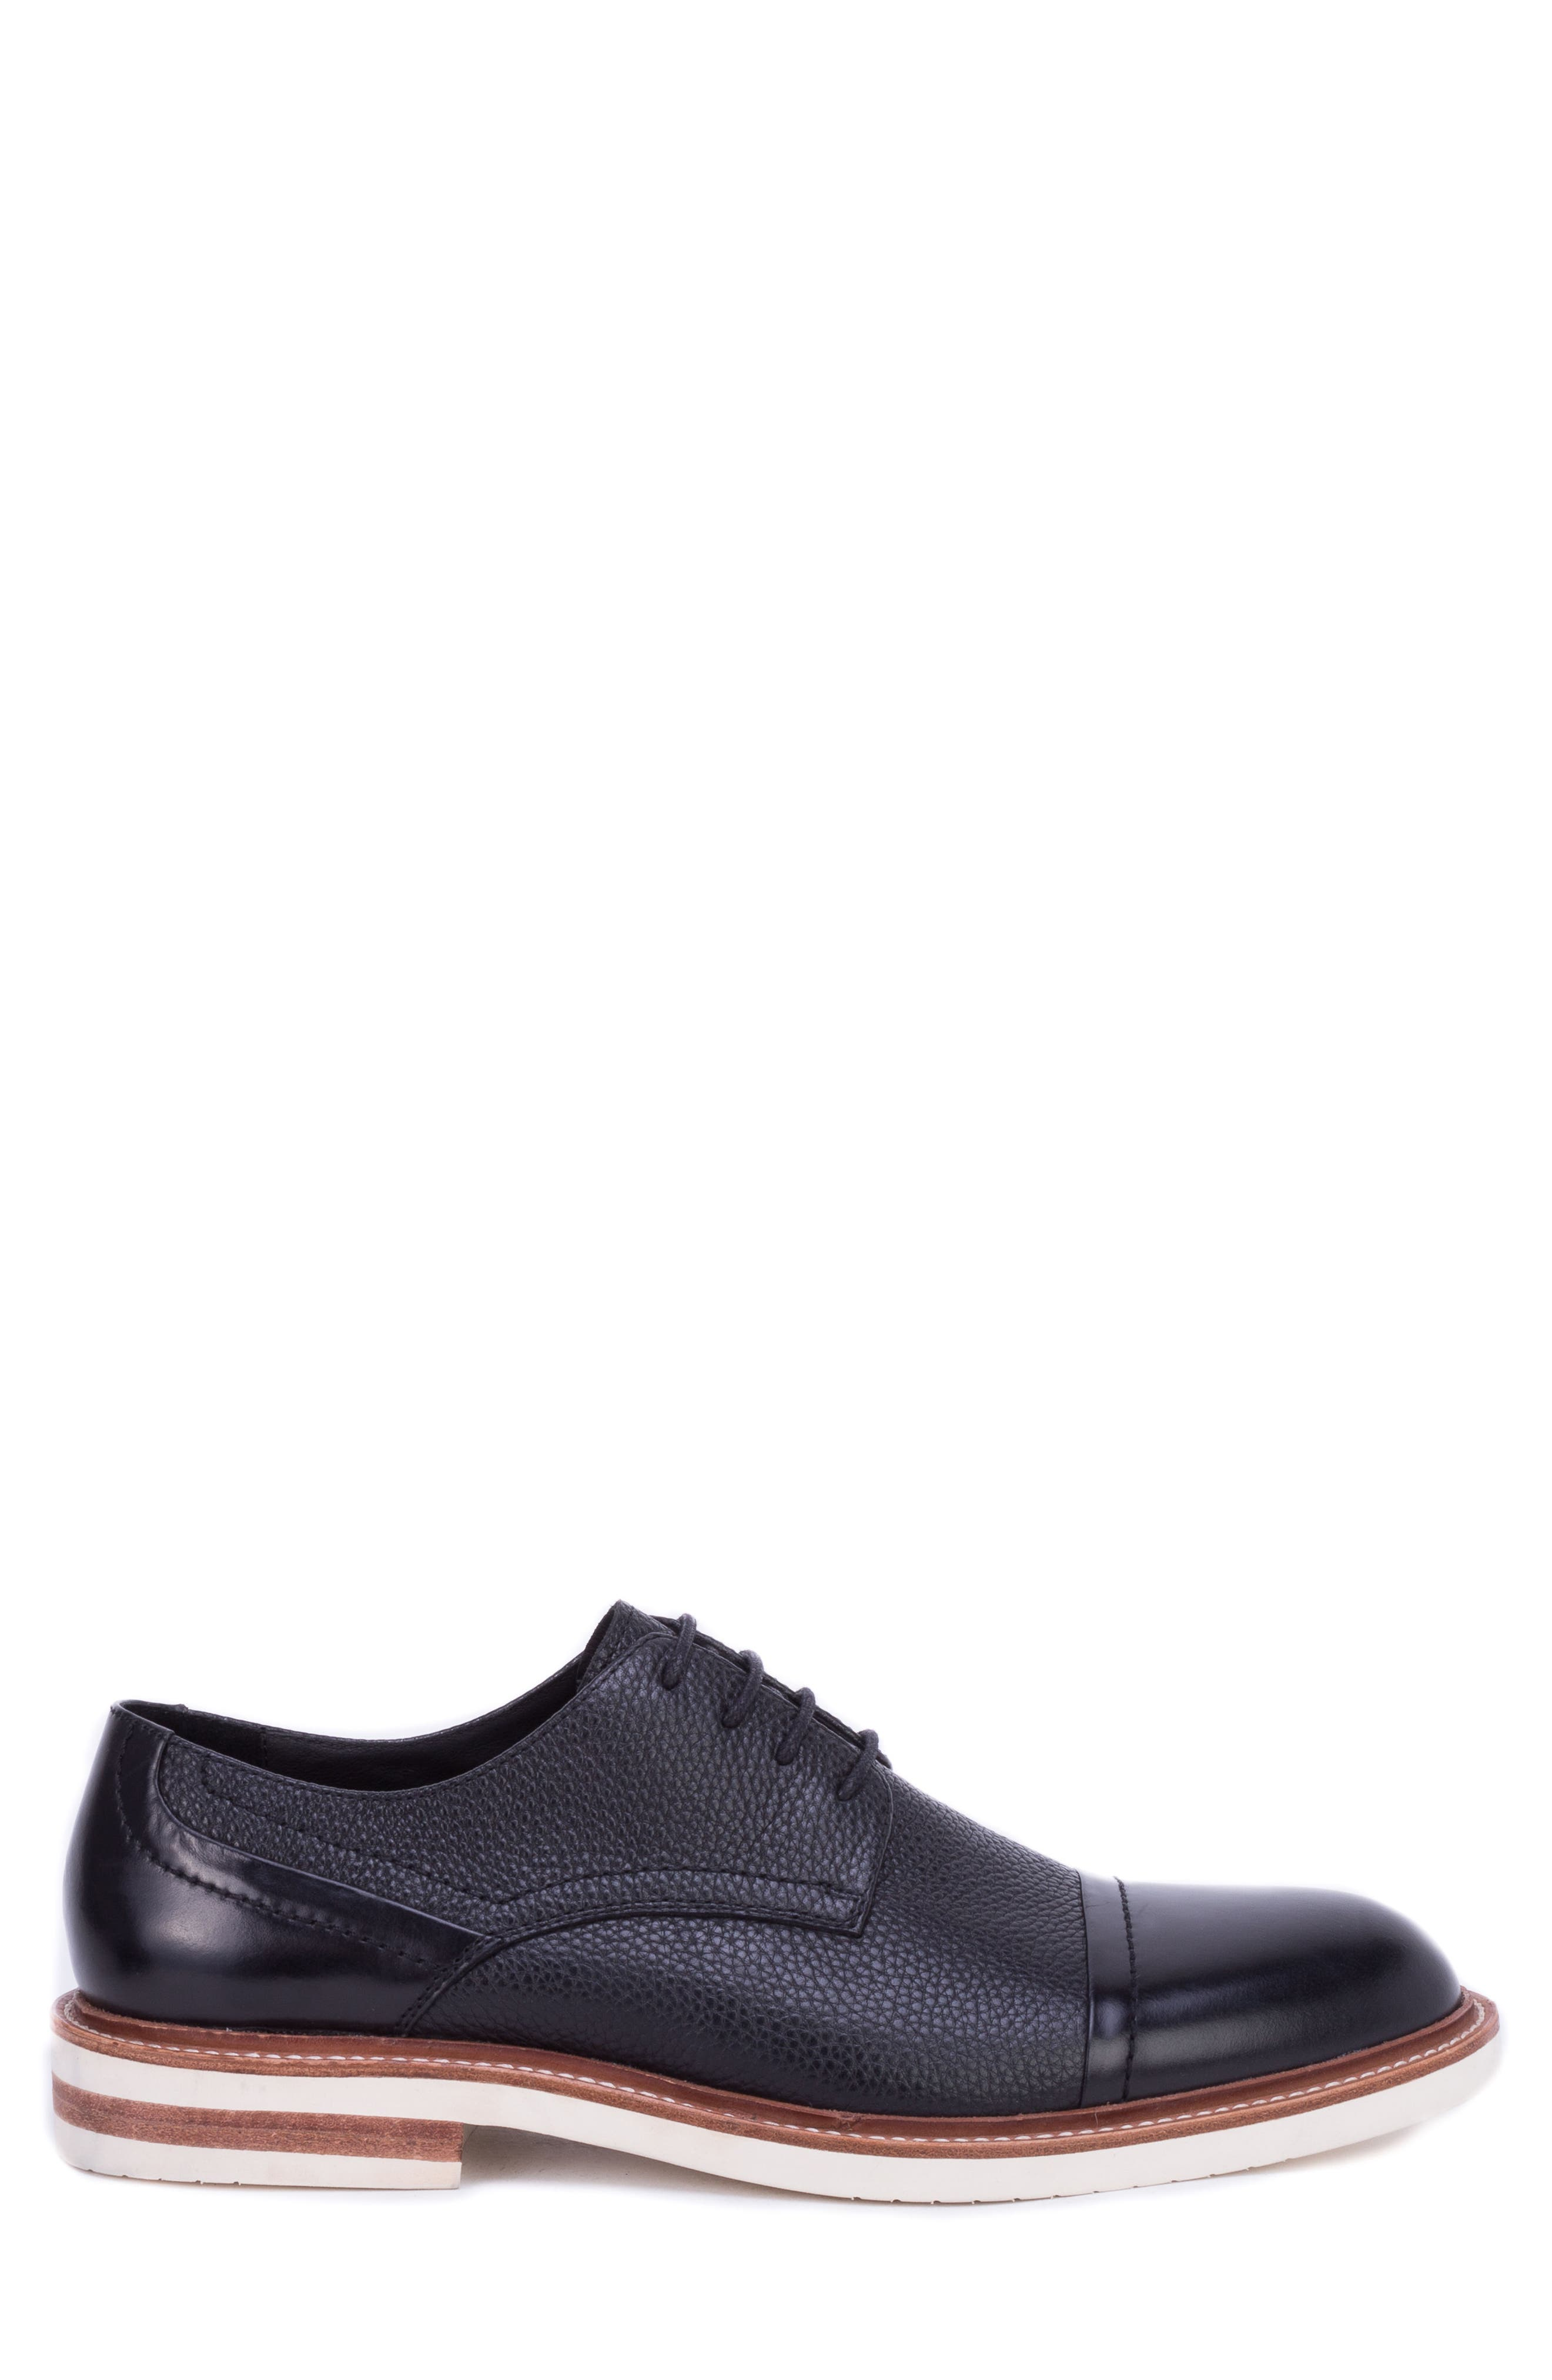 Wensley Cap Toe Derby,                             Alternate thumbnail 3, color,                             BLACK LEATHER